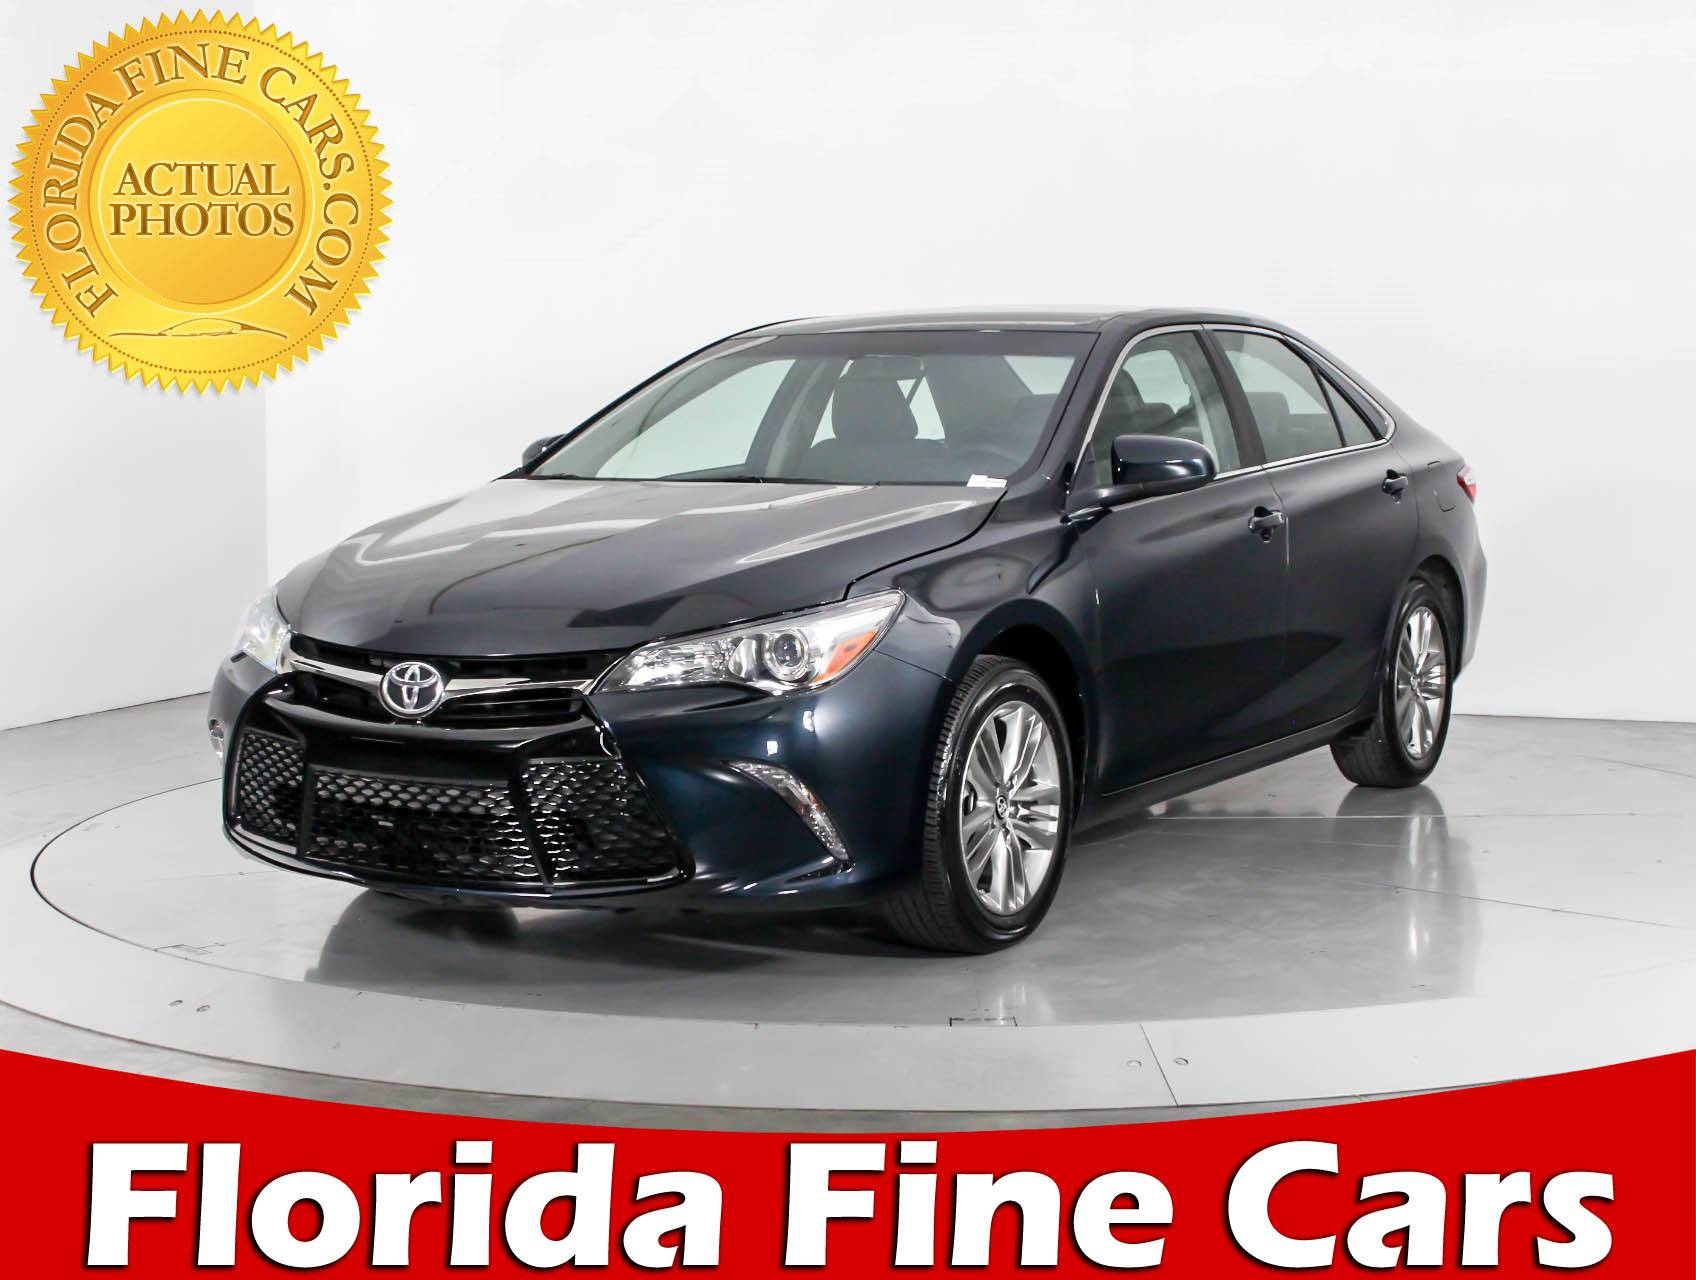 Cars Com Used Lovely Used 2017 toyota Camry Se Sedan for Sale In West Palm Fl